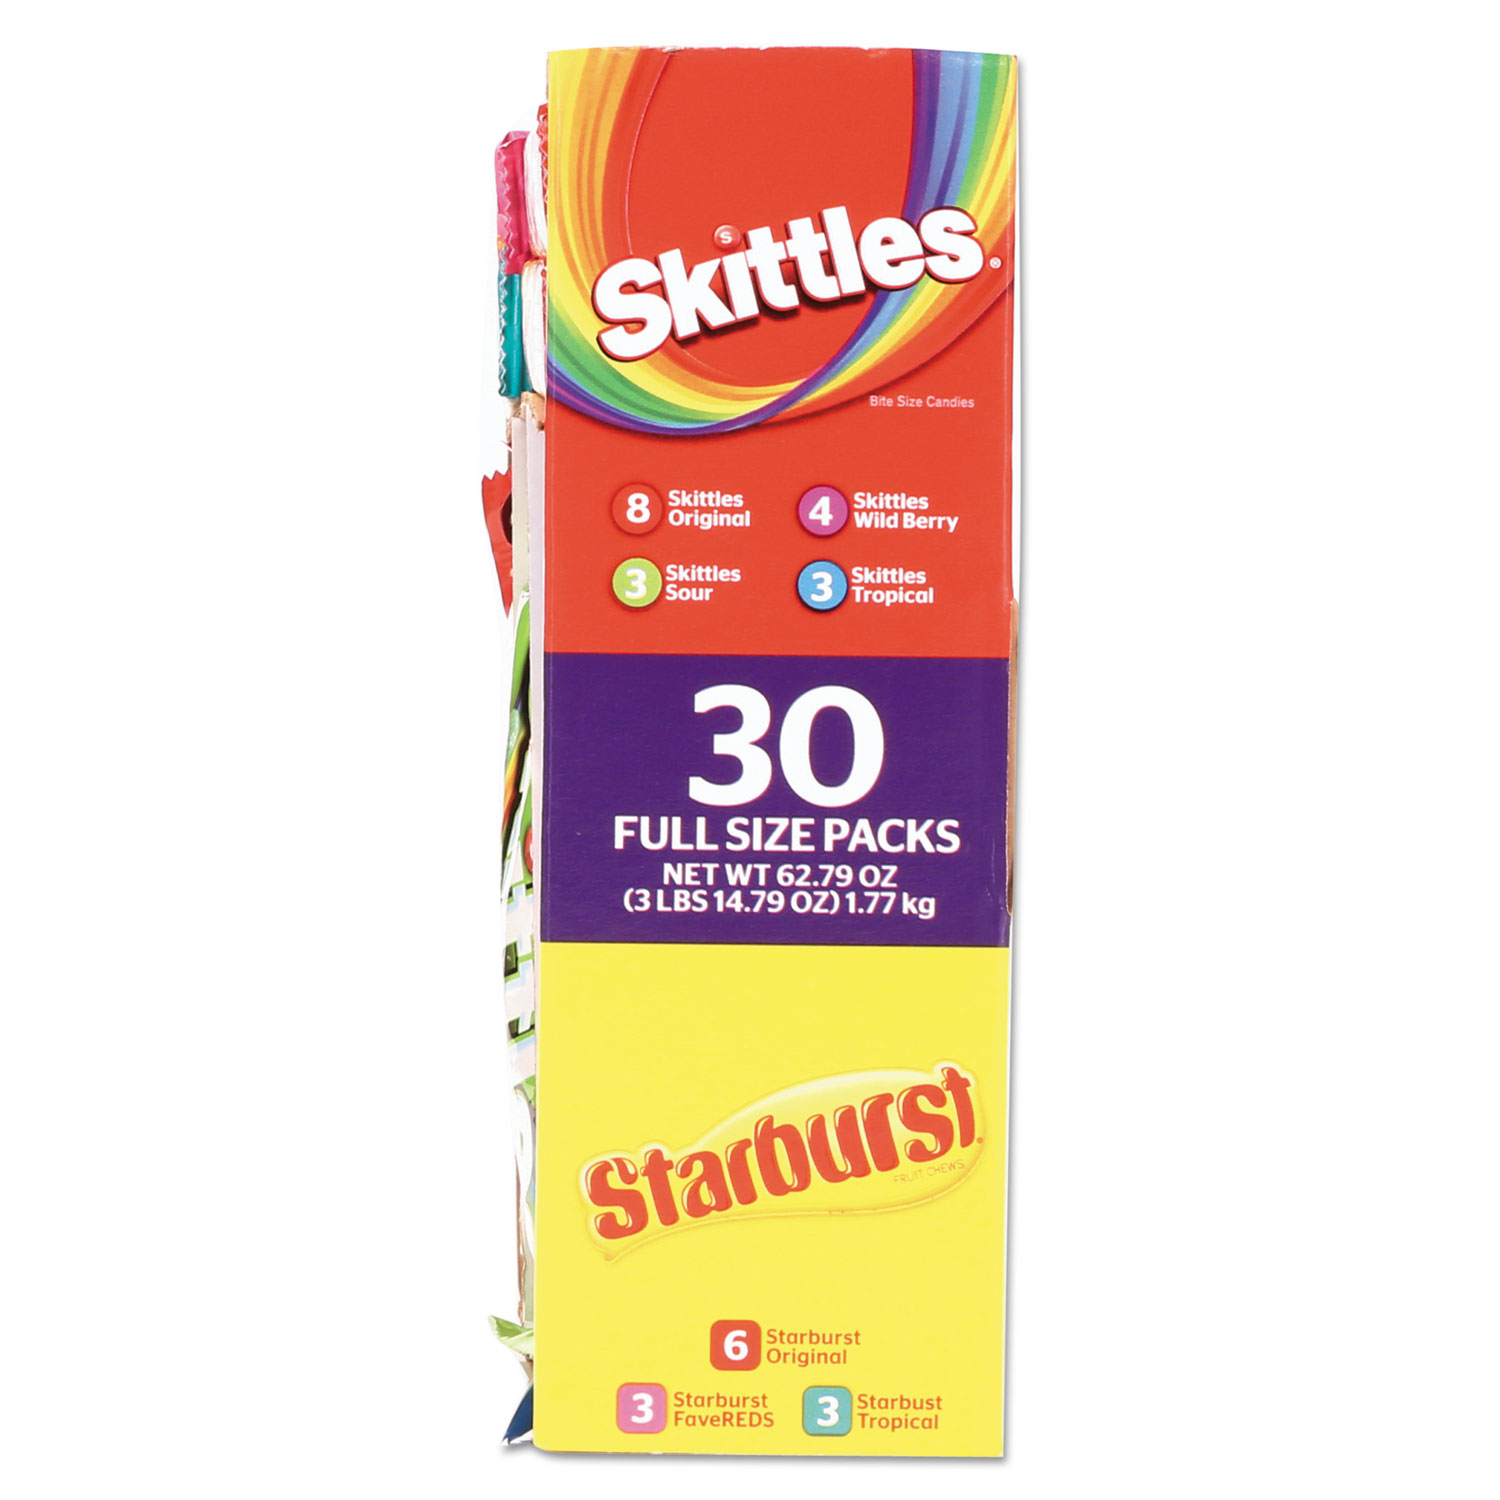 Skittles & Starburst Fruity Candy Variety Box, Assorted, 30 Single Packs